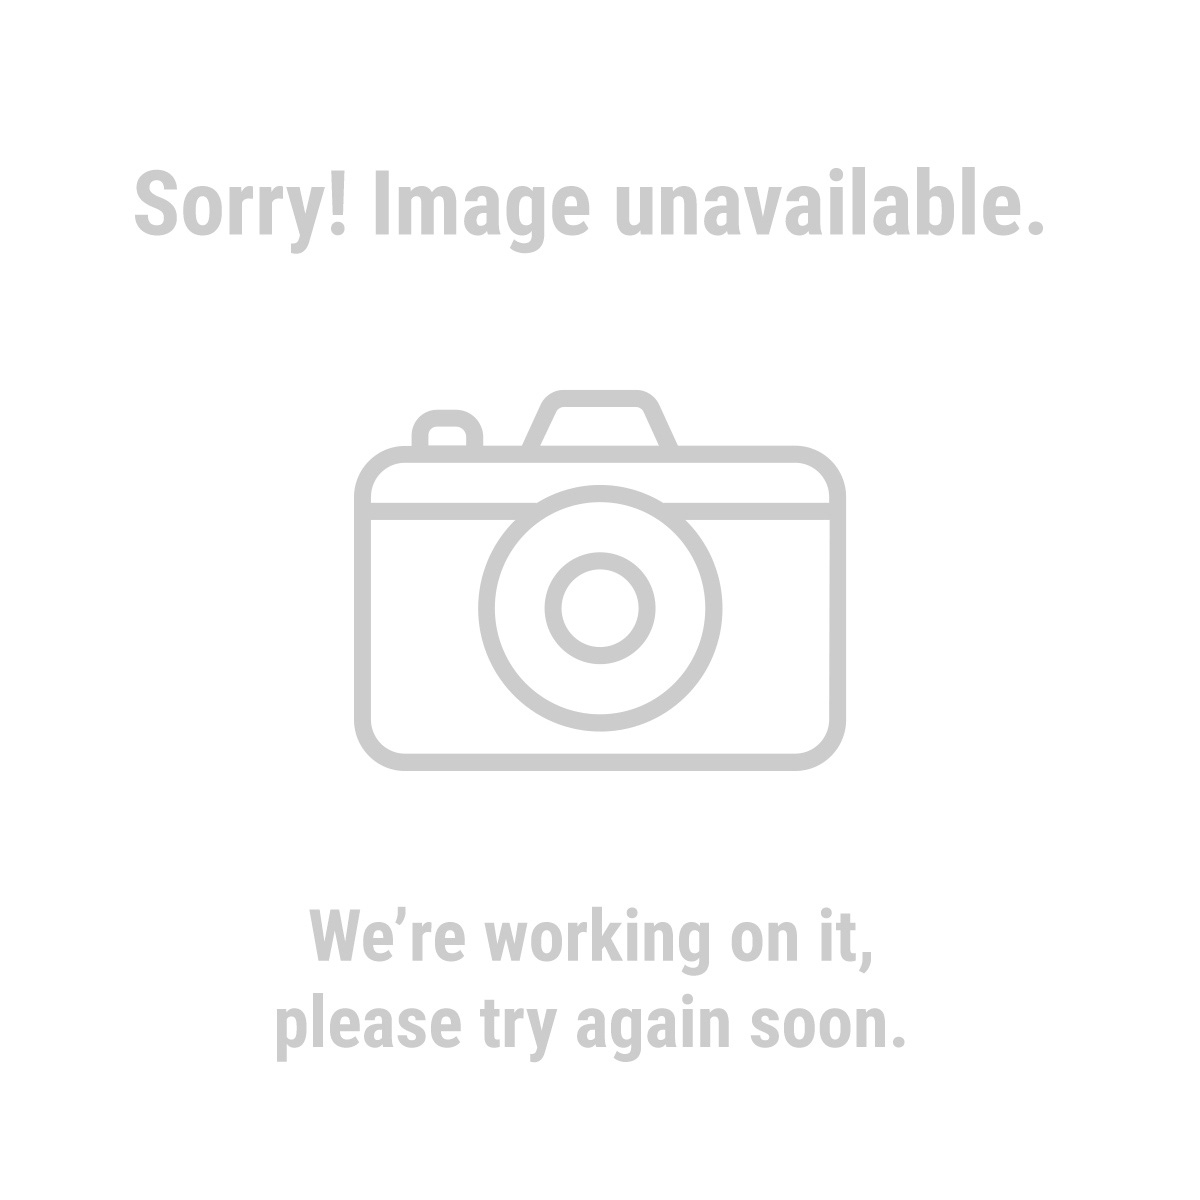 HARDY 99583 Riding/Stable Work Gloves, Large